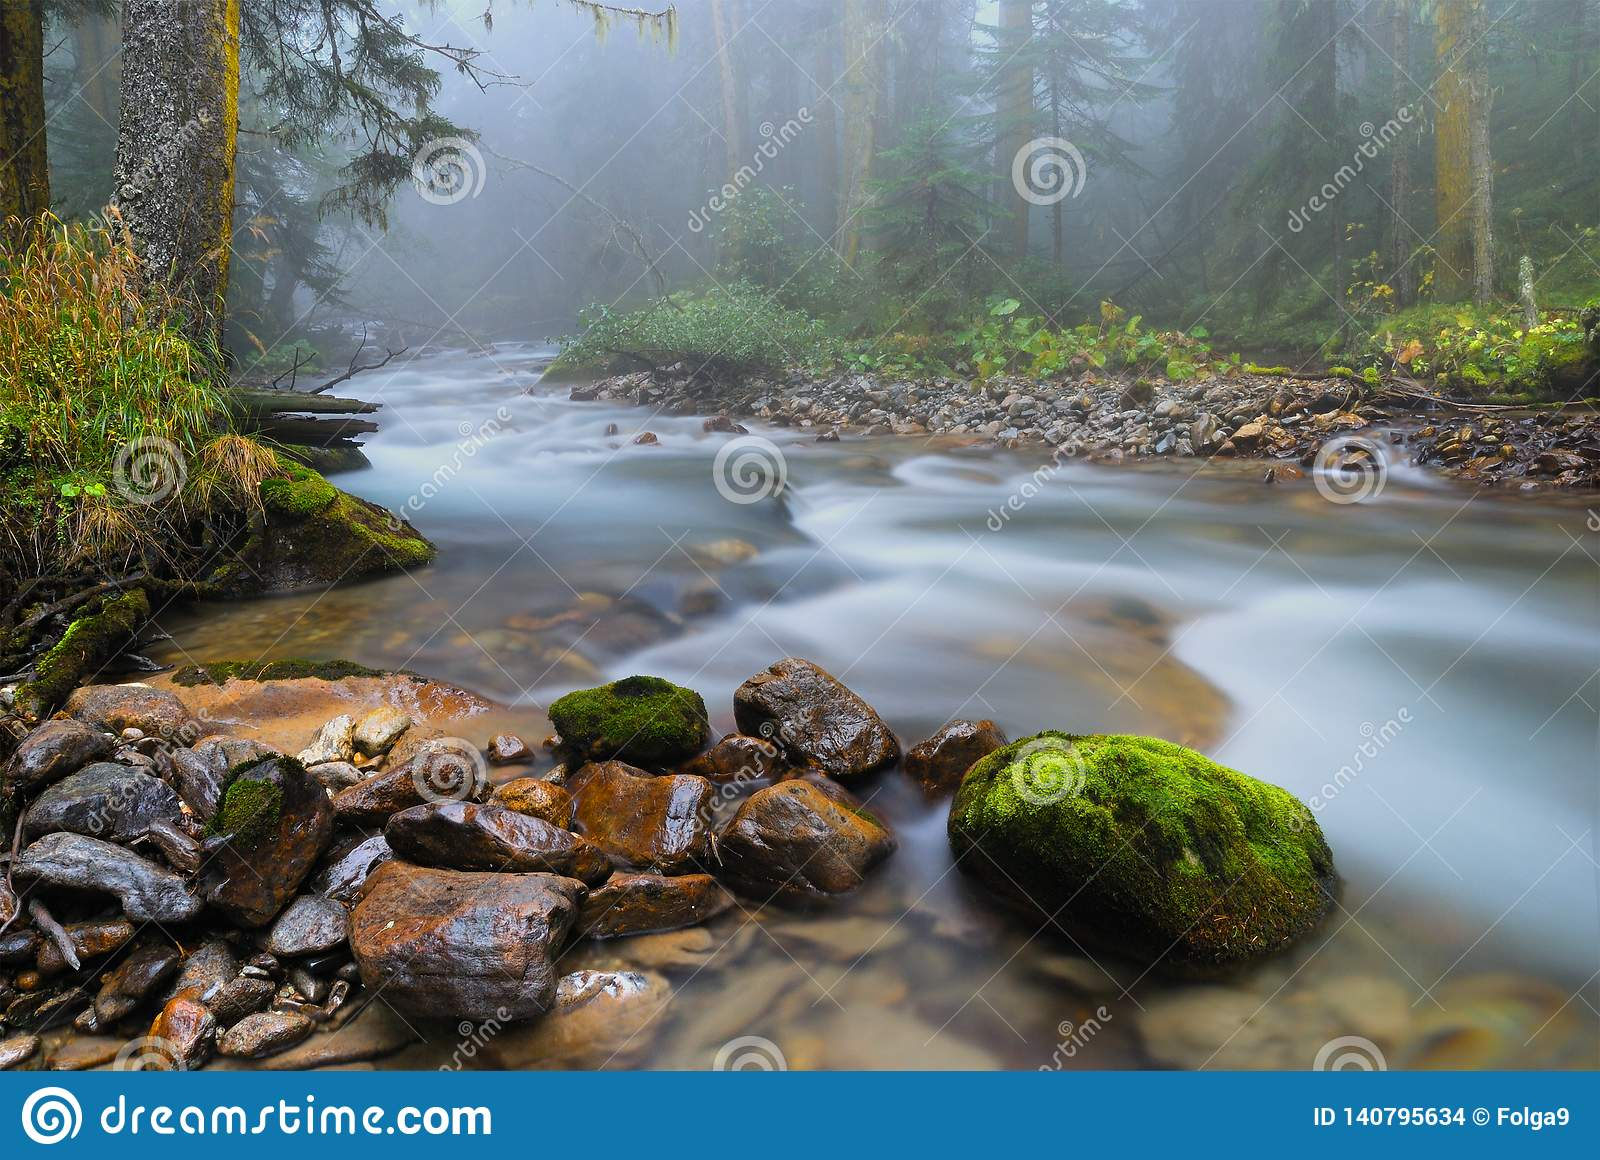 River In A Mountain Picturesque Forest And Fog In The